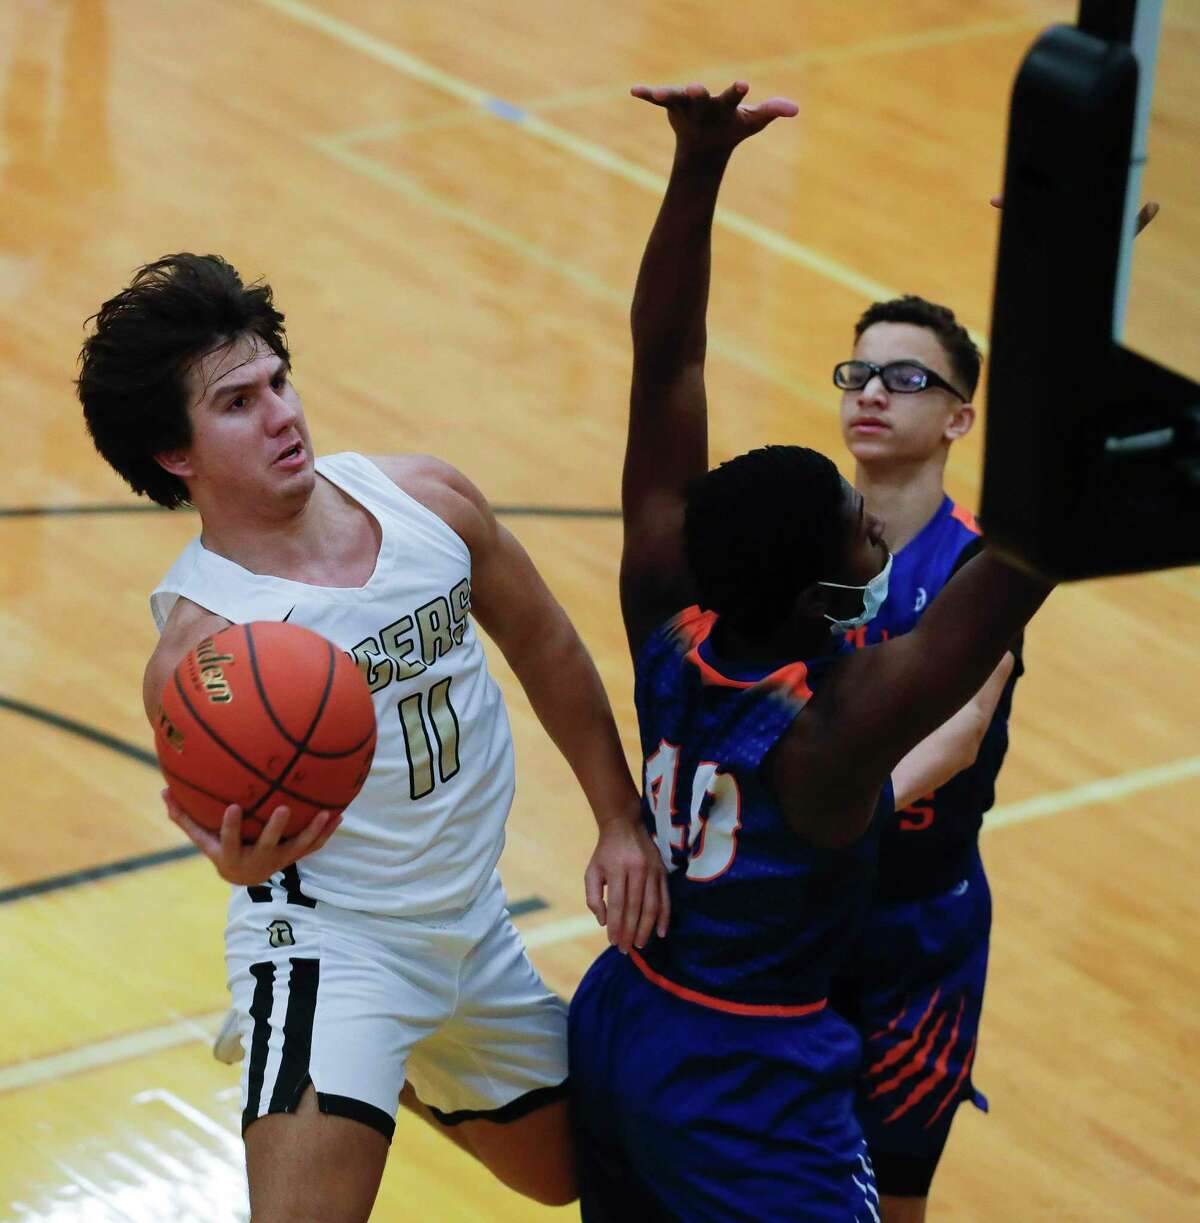 Conroe's Layne O'Dell (11) scoops the ball around Grand Oaks' Ahmad Smith (40) during the first quarter of a District 13-6A high school basketball game at Conroe High School, Wednesday, Jan. 13, 2021, in Conroe.